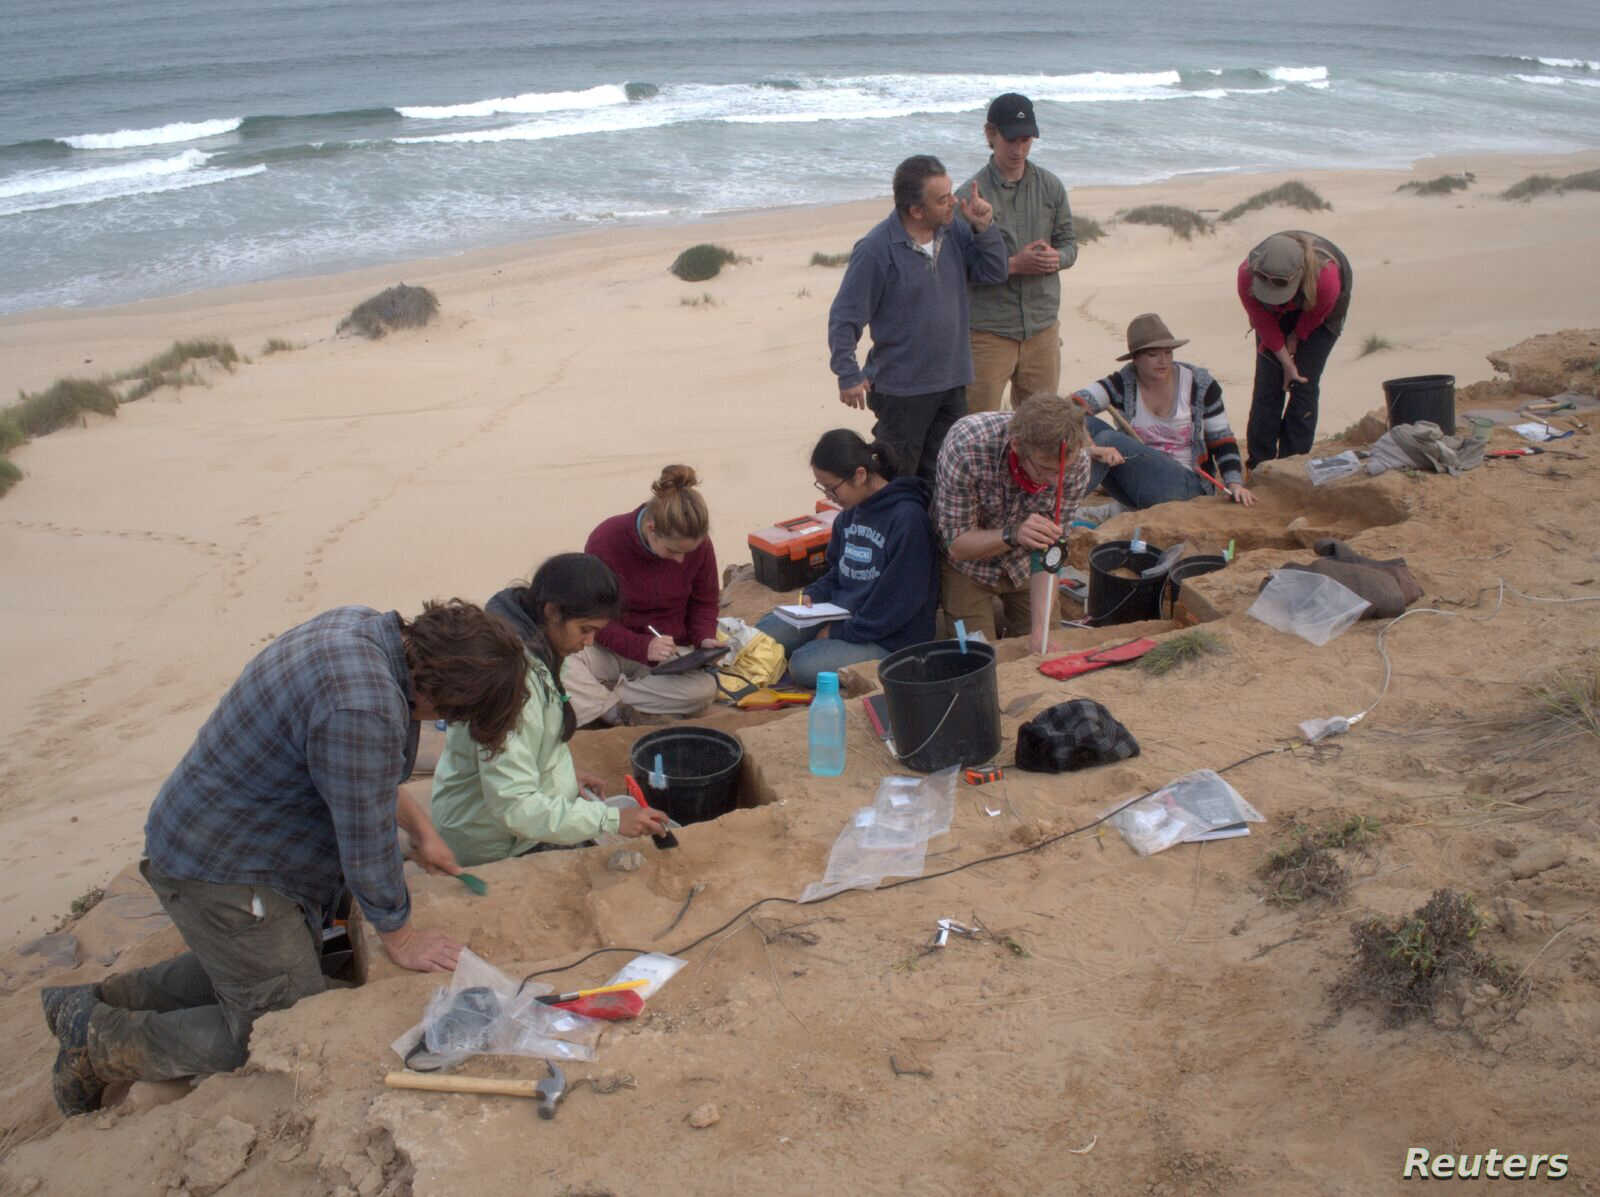 Members of a research team are pictured conducting excavations at the Vleesbaai archeological site on the south coast of South Africa where humans made stone tools about 74,000 years ago in this 2016 photo released March 12, 2018.